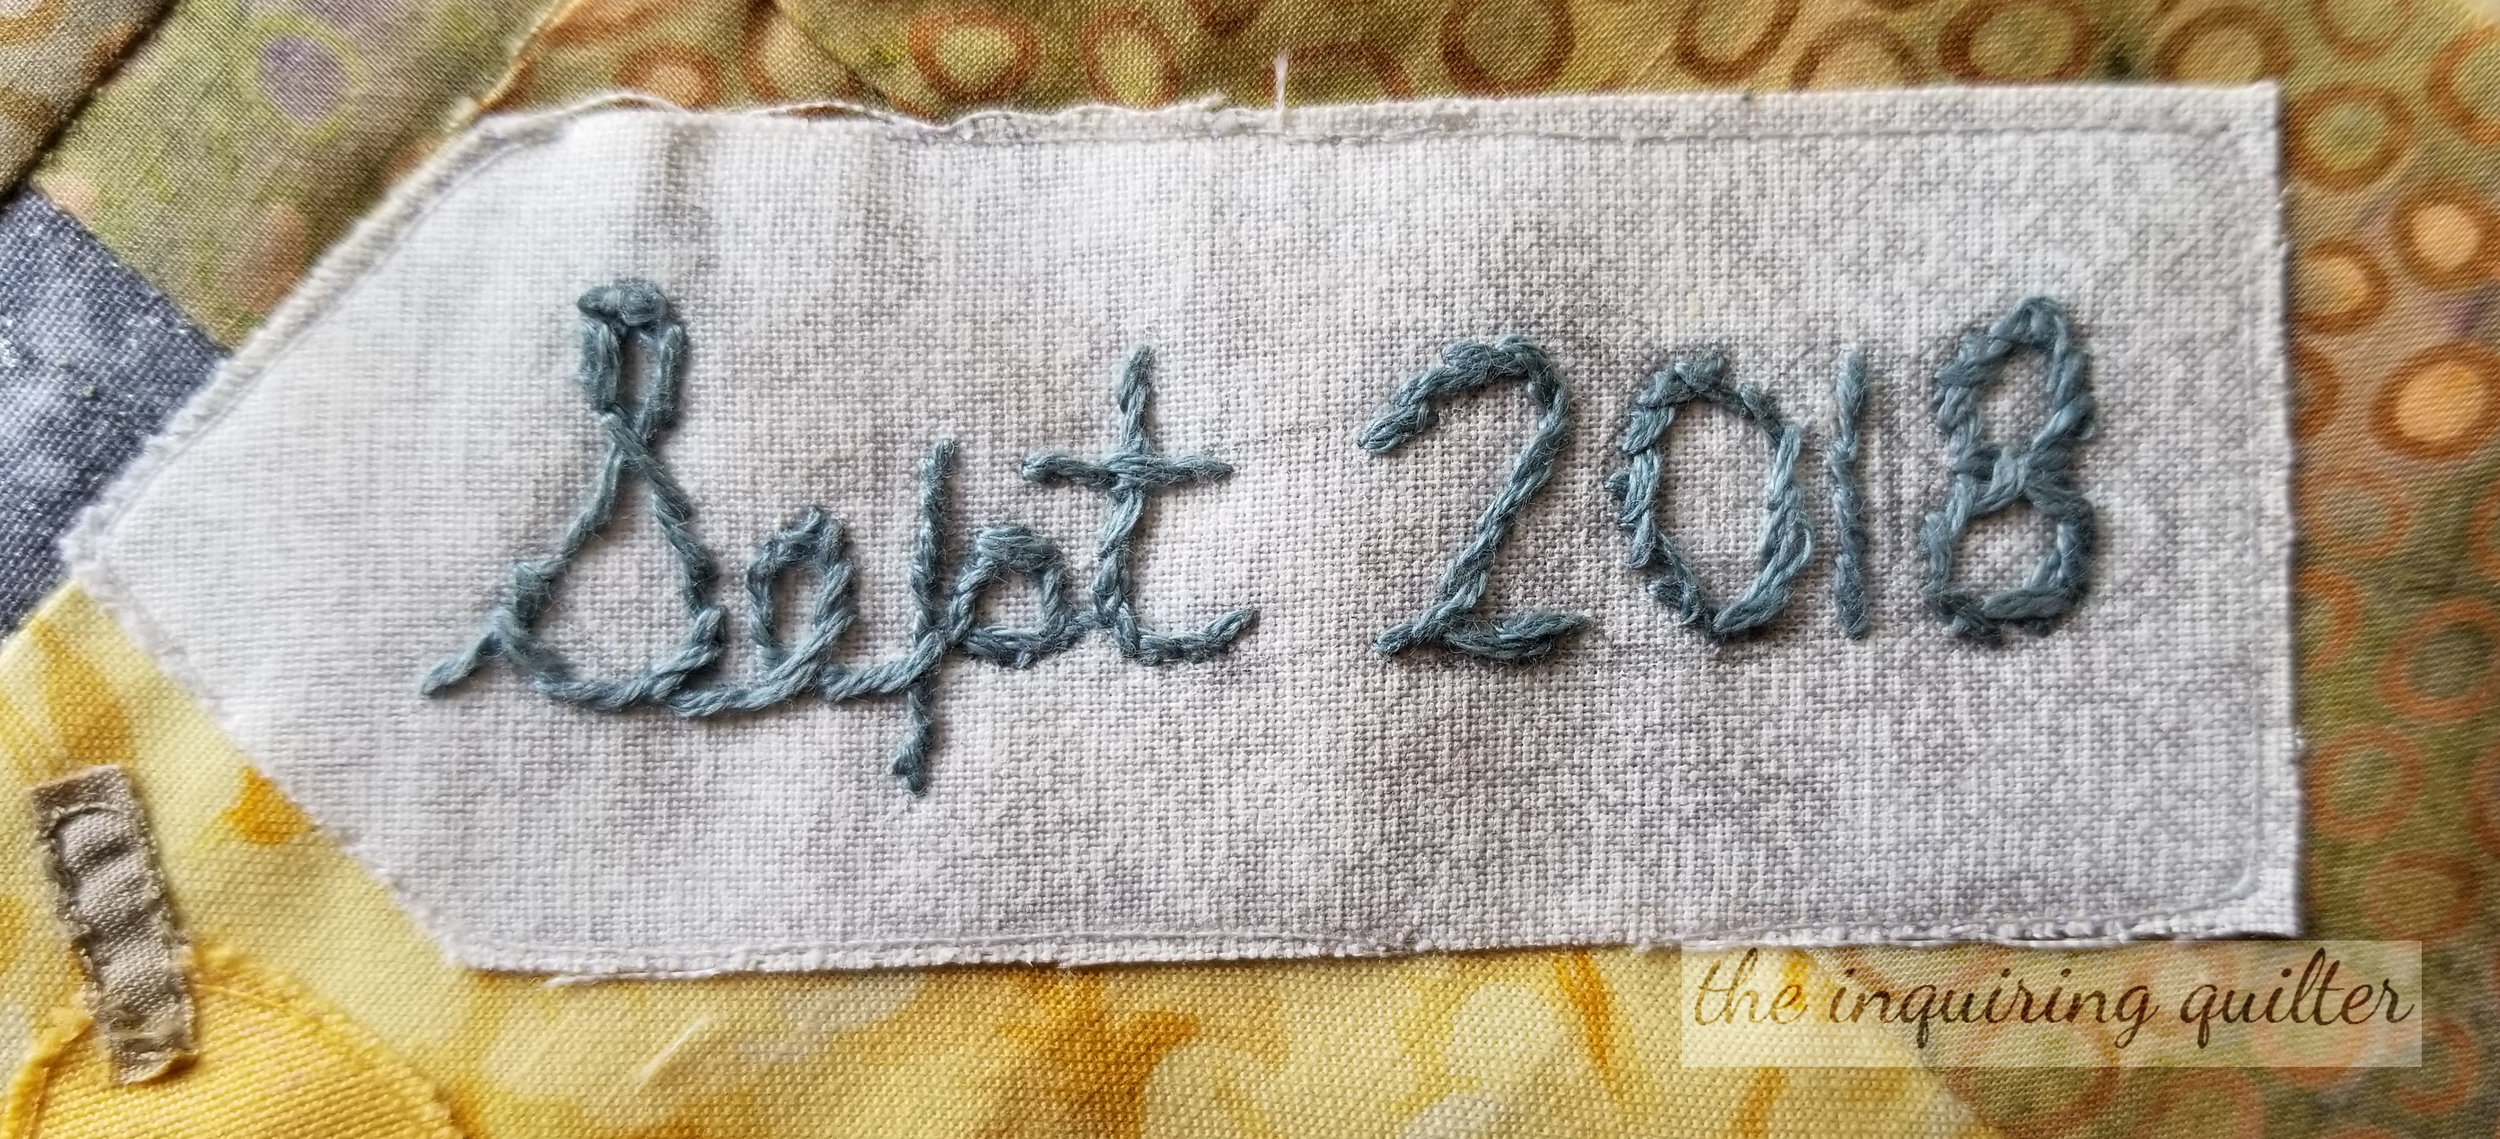 How To Use The Stem Stitch Embroidery The Inquiring Quilter